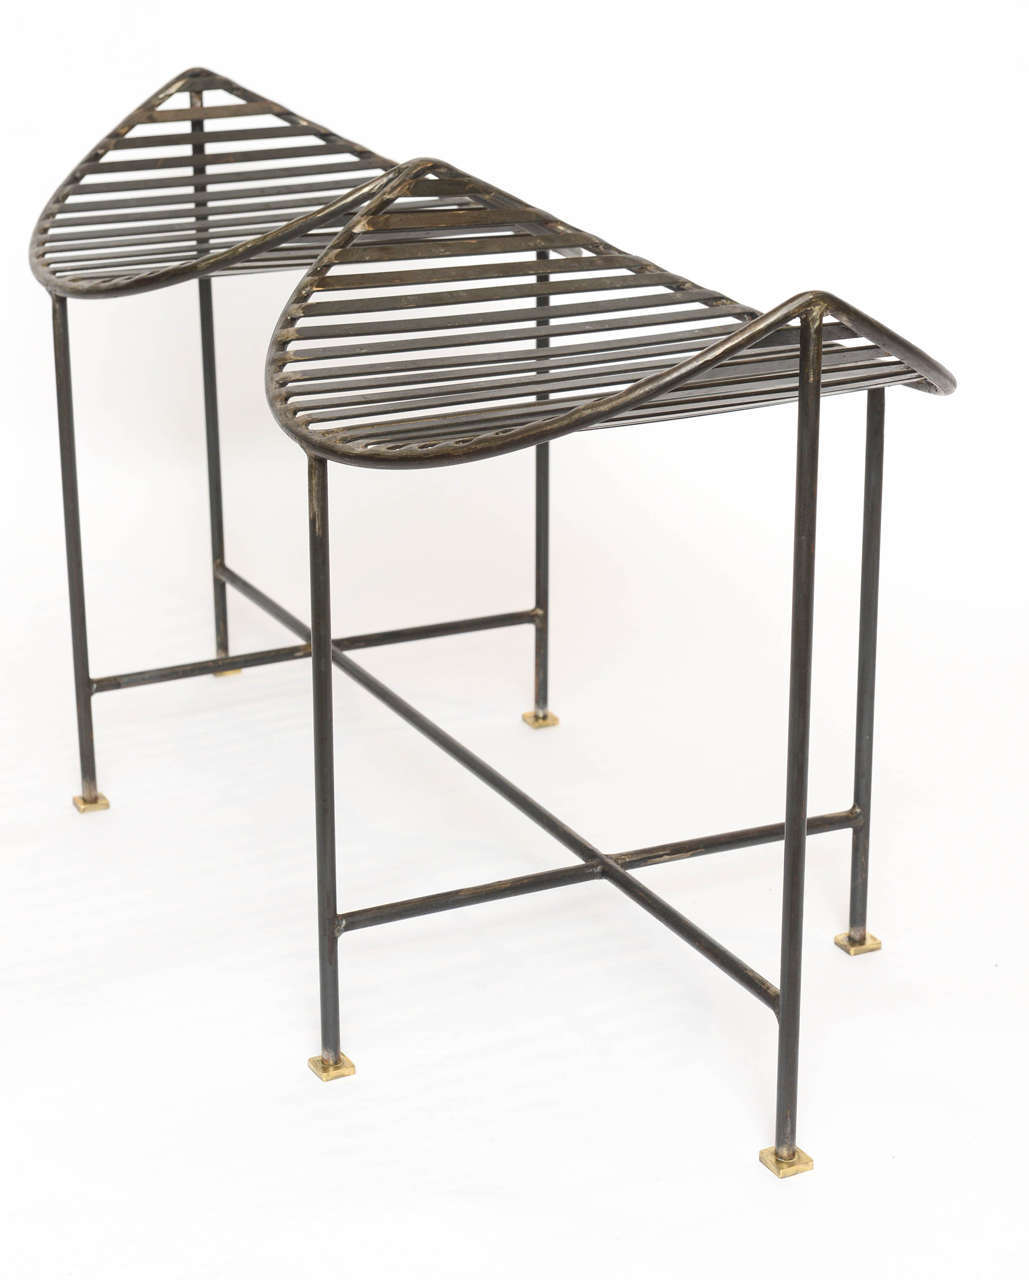 Brass Industrial Slatted Blackened Iron Bench For Sale